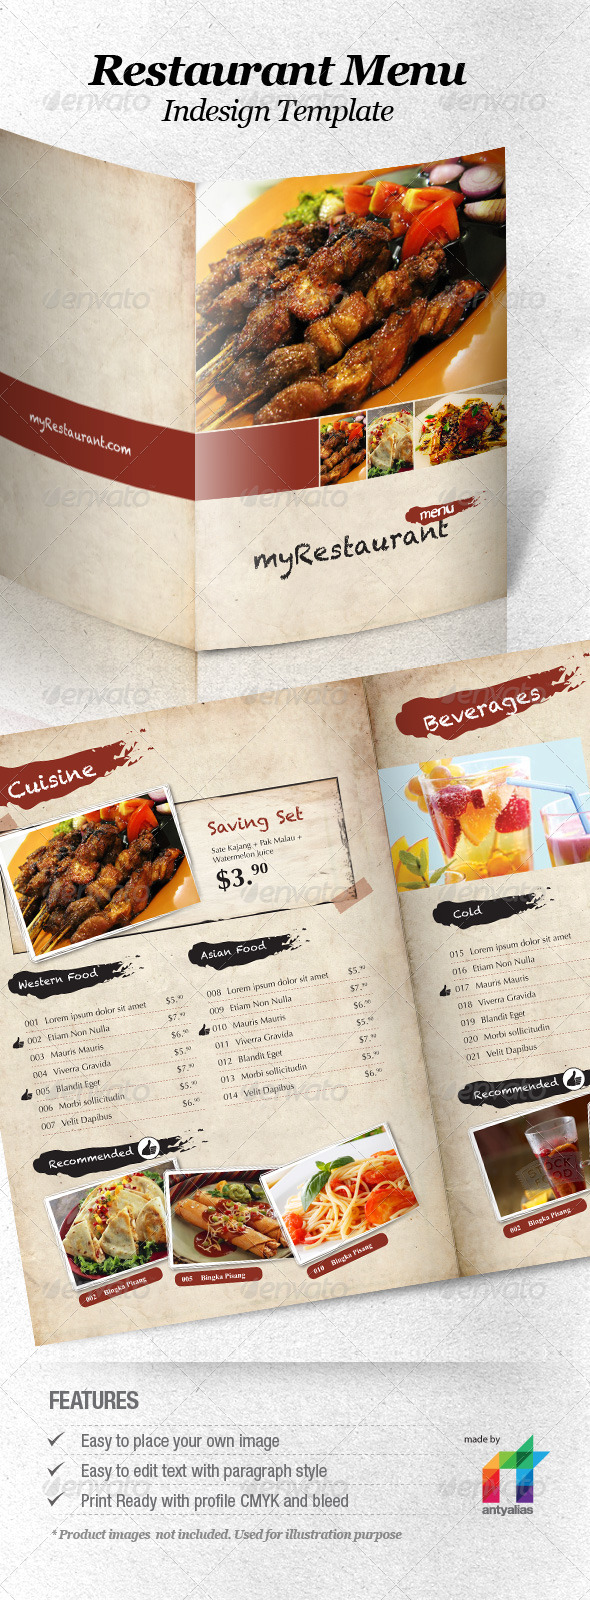 40 psd indesign food menu templates for restaurants psdtemplatesblog. Black Bedroom Furniture Sets. Home Design Ideas